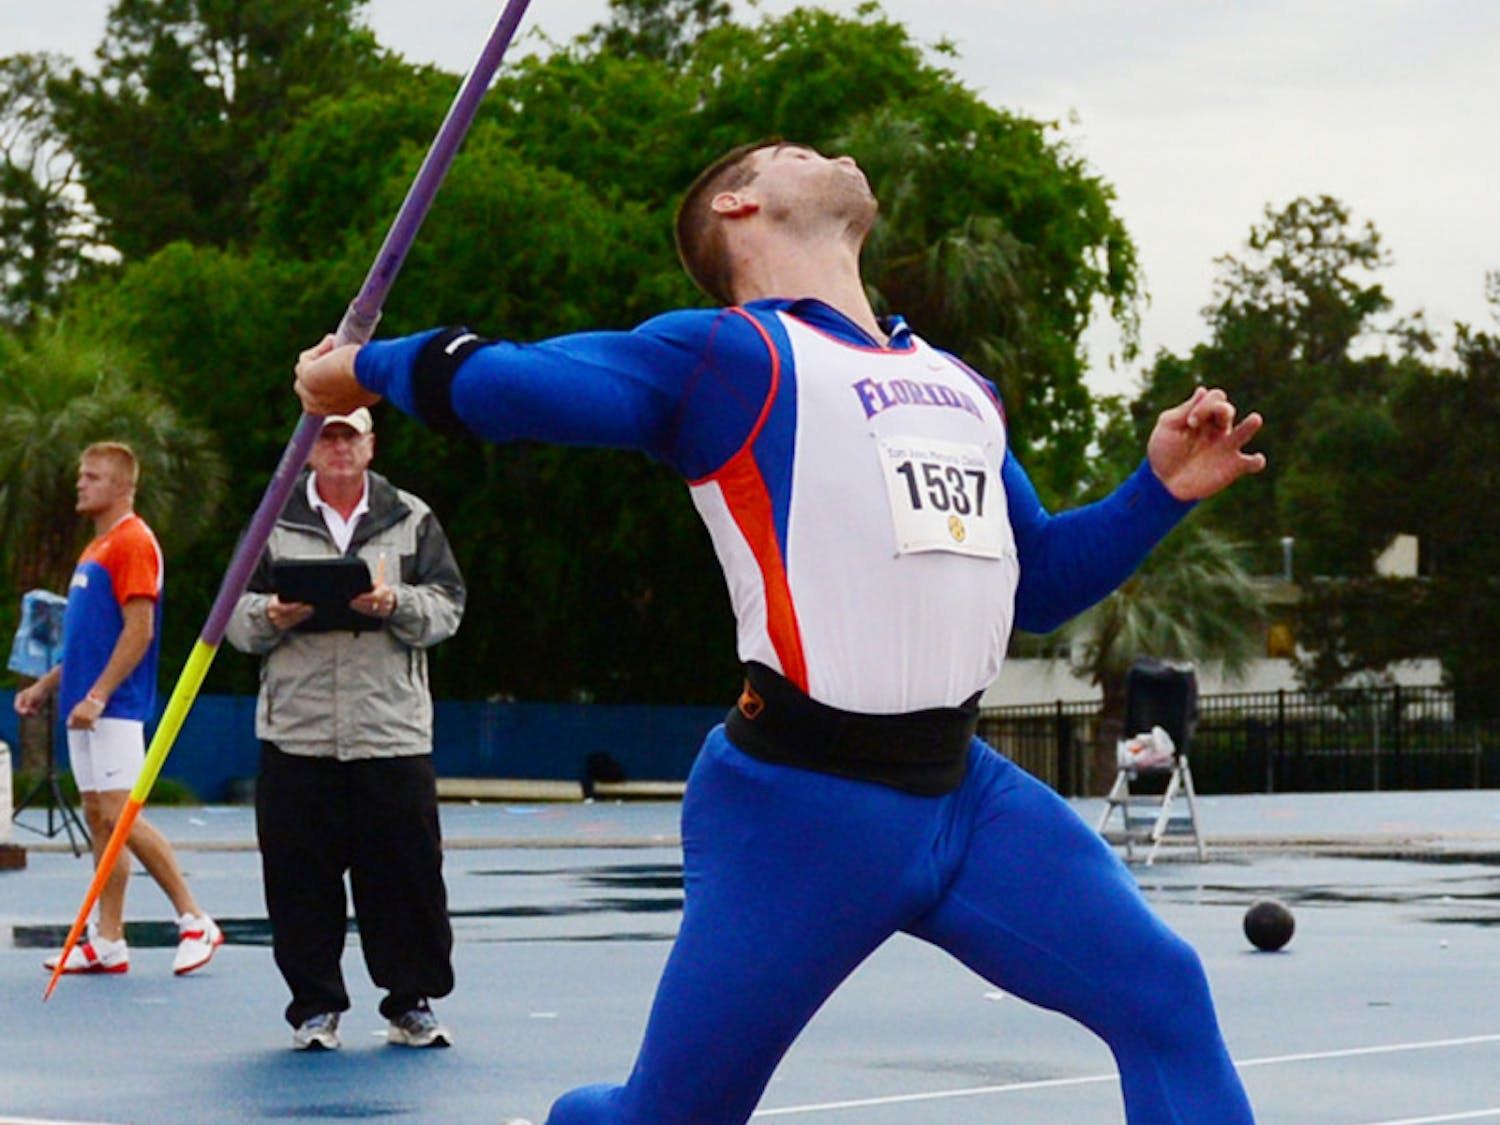 Stipe Zunic throws during the Tom Jones Memorial Classic on April 21, 2012. He set a career-best shot-put mark of 18.57 meters on Saturday.